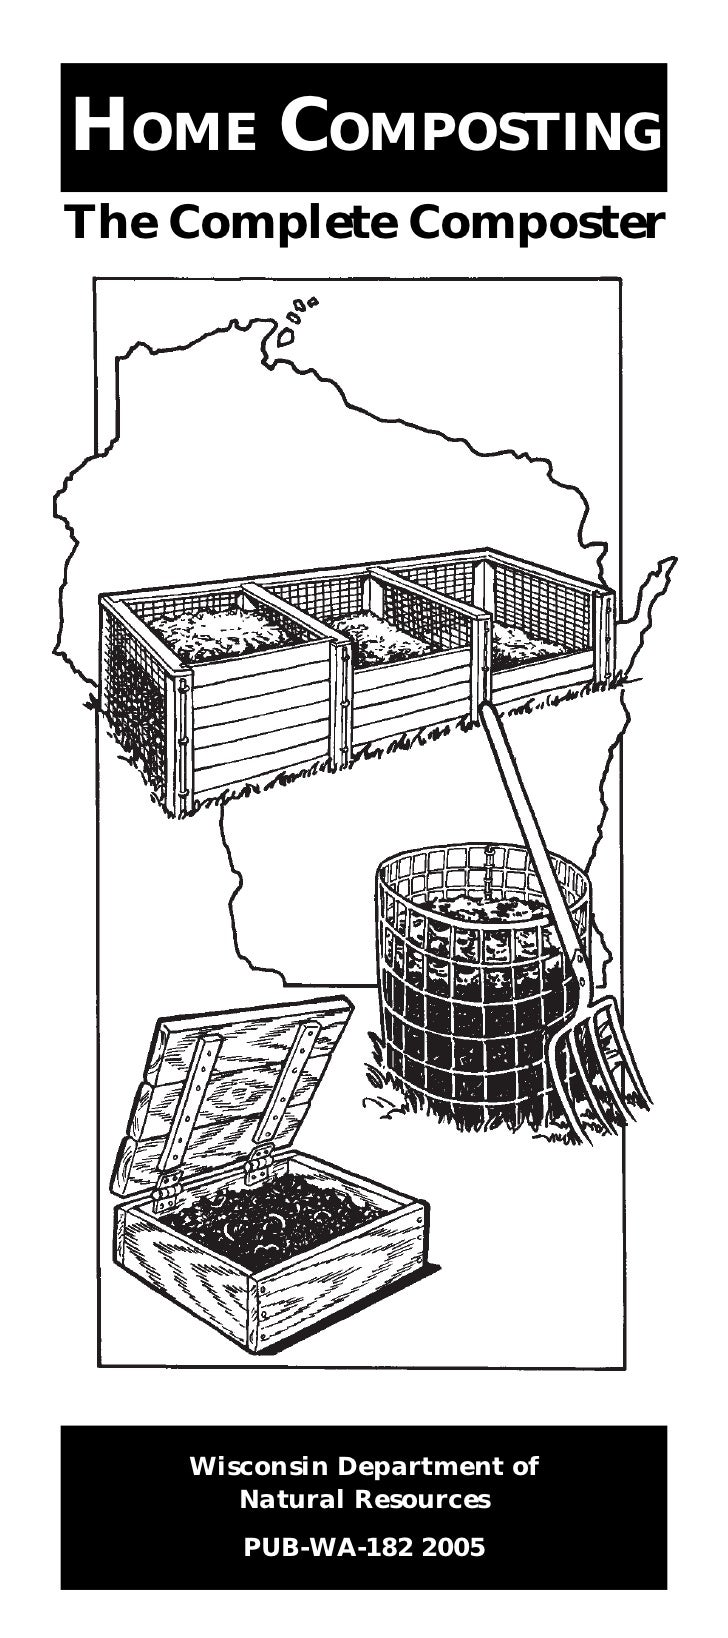 HOME COMPOSTINGThe Complete Composter    Wisconsin Department of       Natural Resources       PUB-WA-182 2005